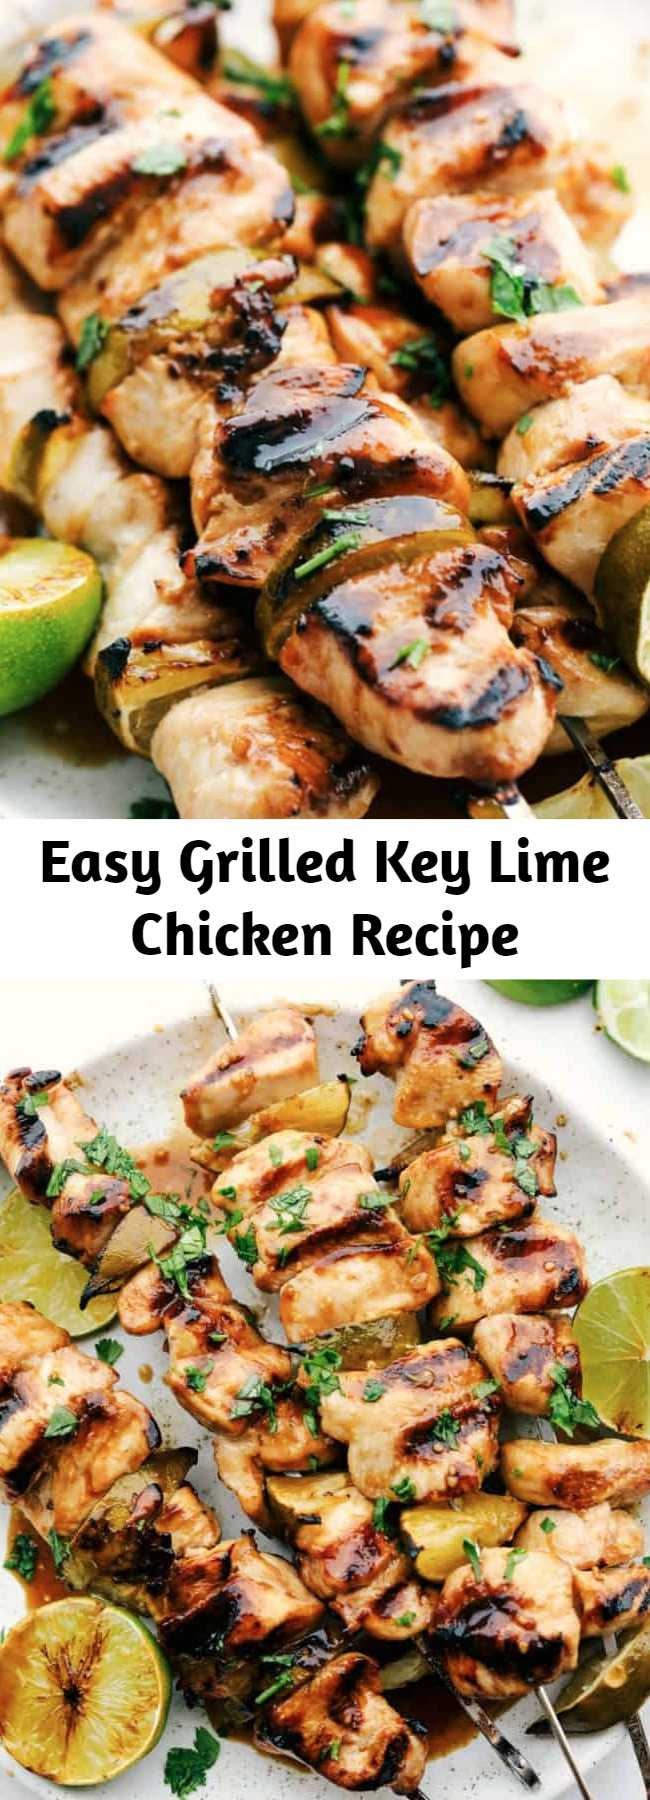 Easy Grilled Key Lime Chicken Recipe - If you're using bamboo skewers, soak your sticks in water for at least 5 minutes. Cut chicken into large chunks, and skewer. Allow to marinate for at least 1 hour. I am pretty sure your family will love this key lime chicken too!